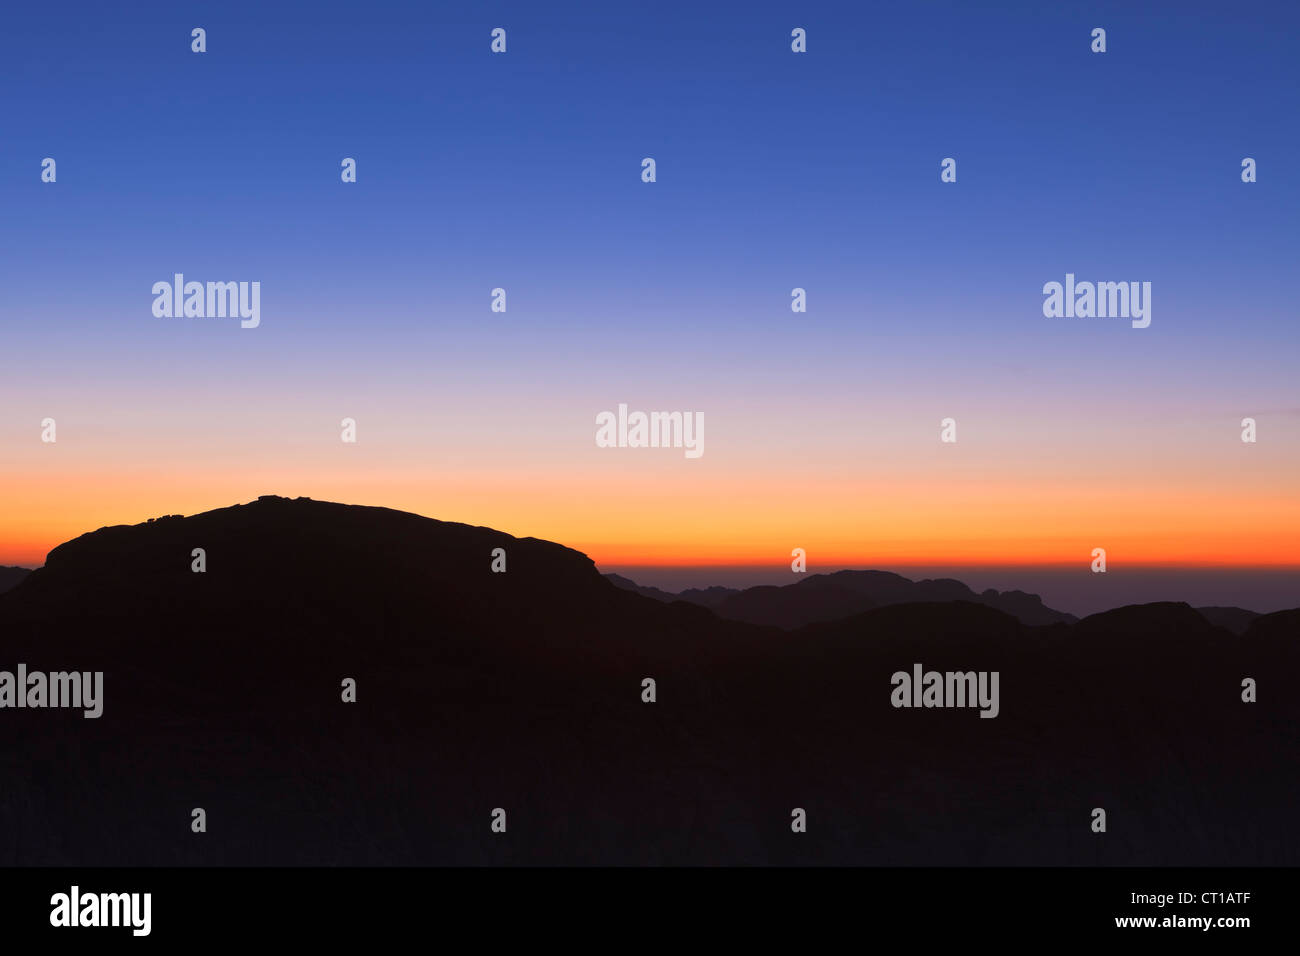 Sunset view from the summit of Mount Sinai, Egypt - Stock Image